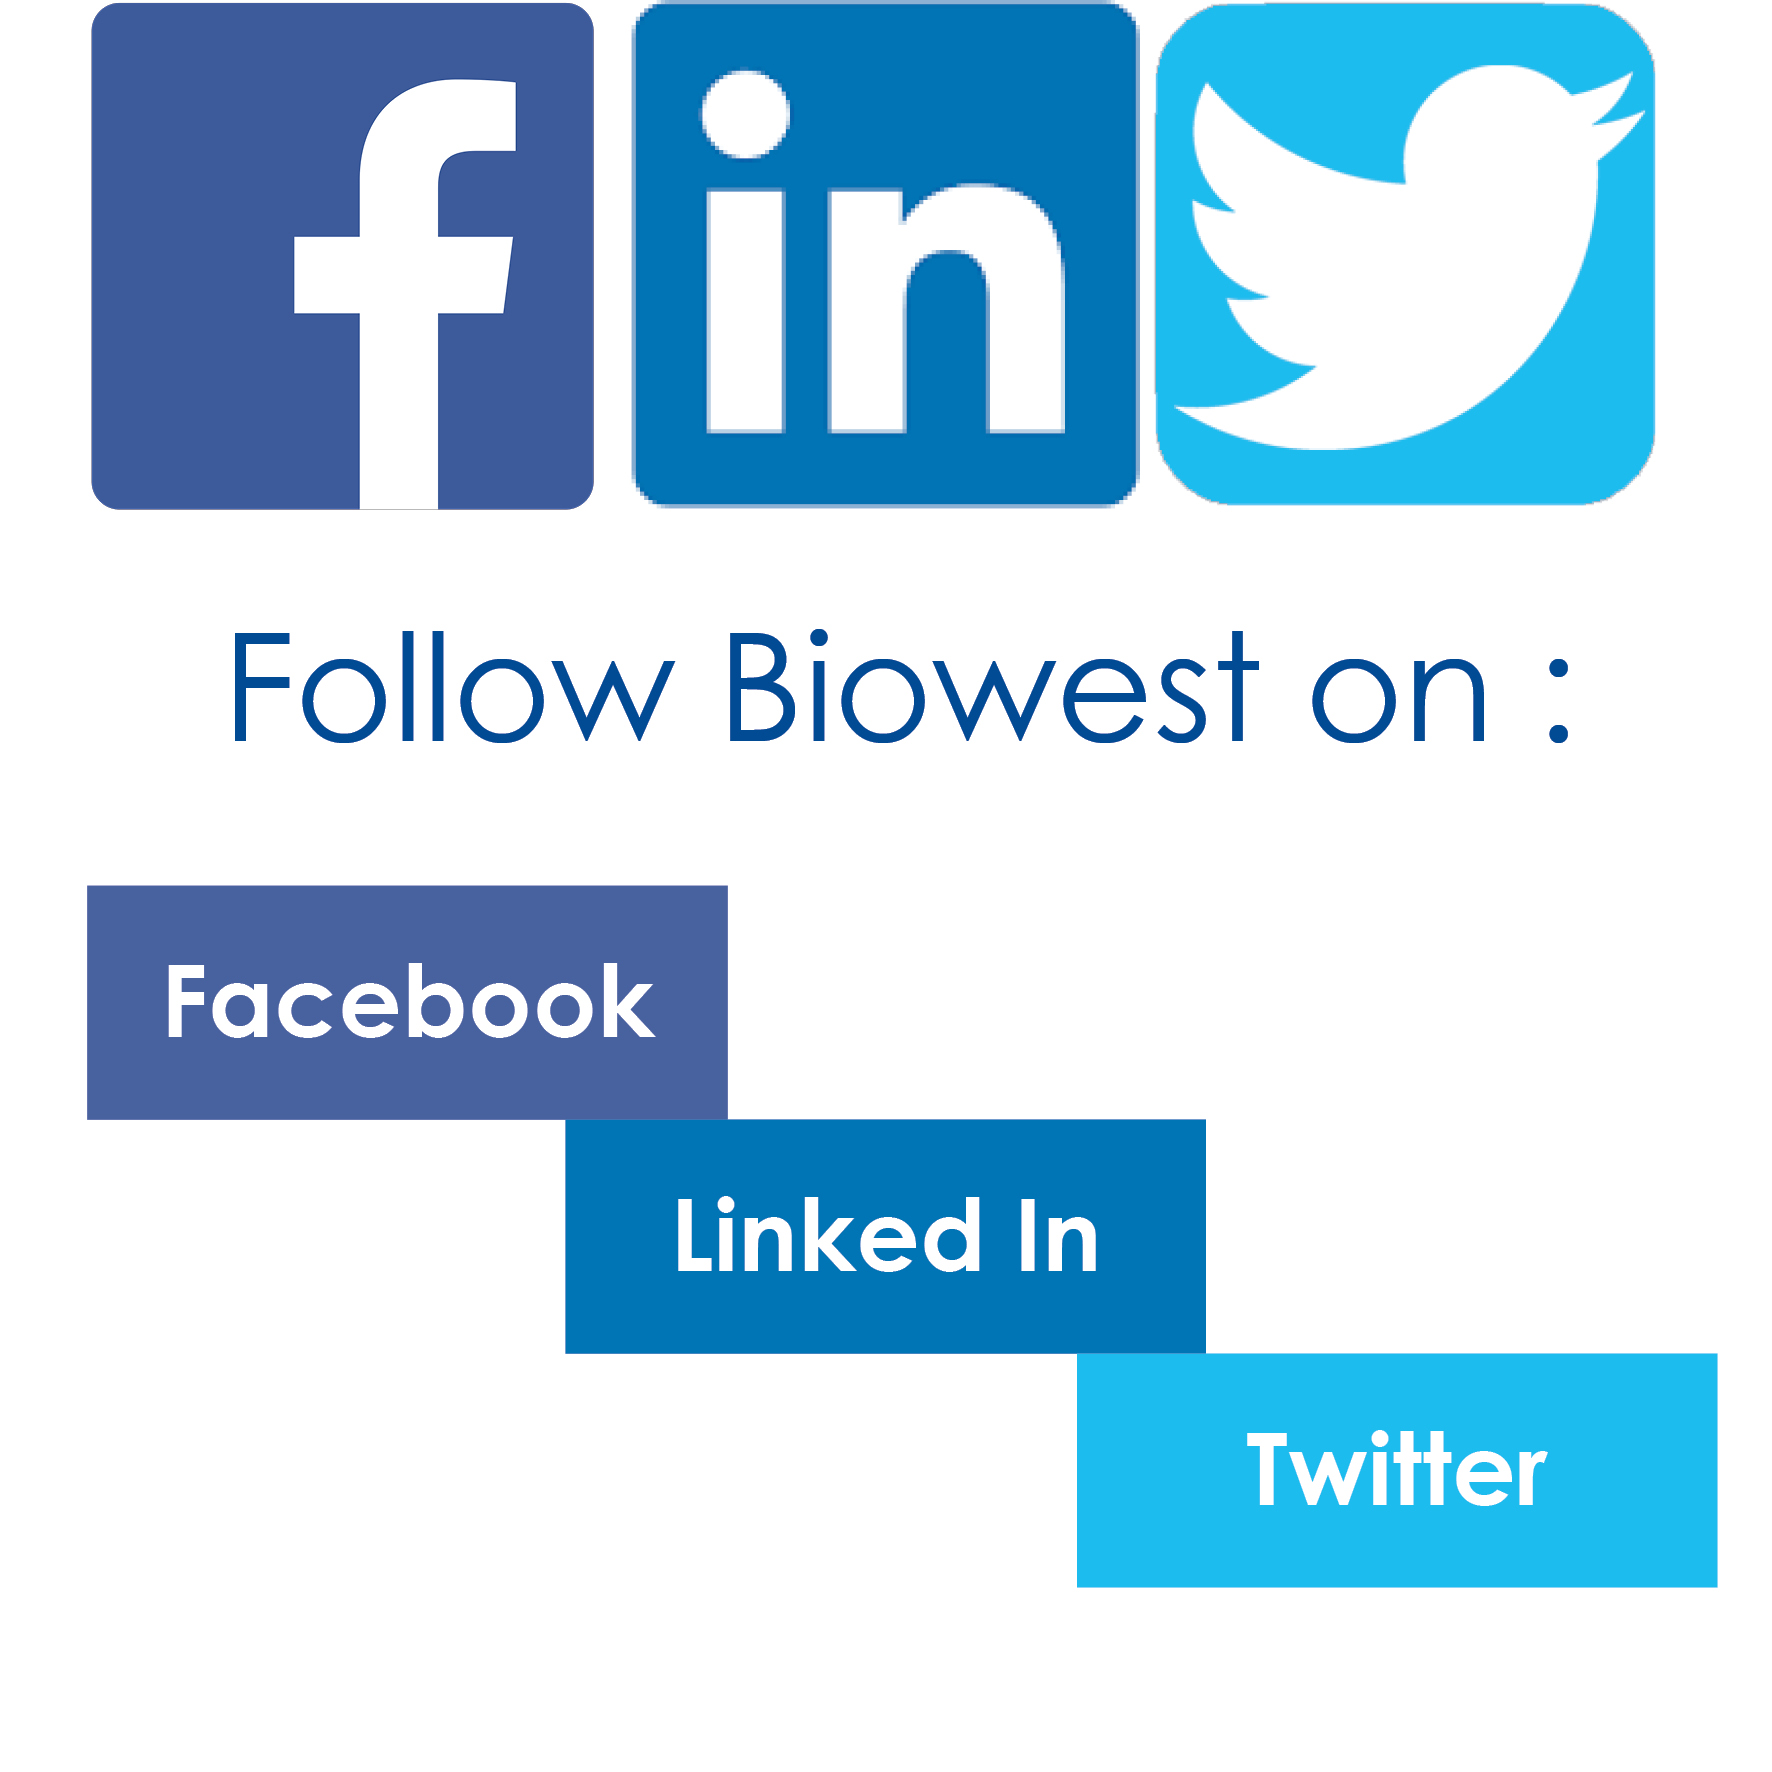 Biowest is on social media